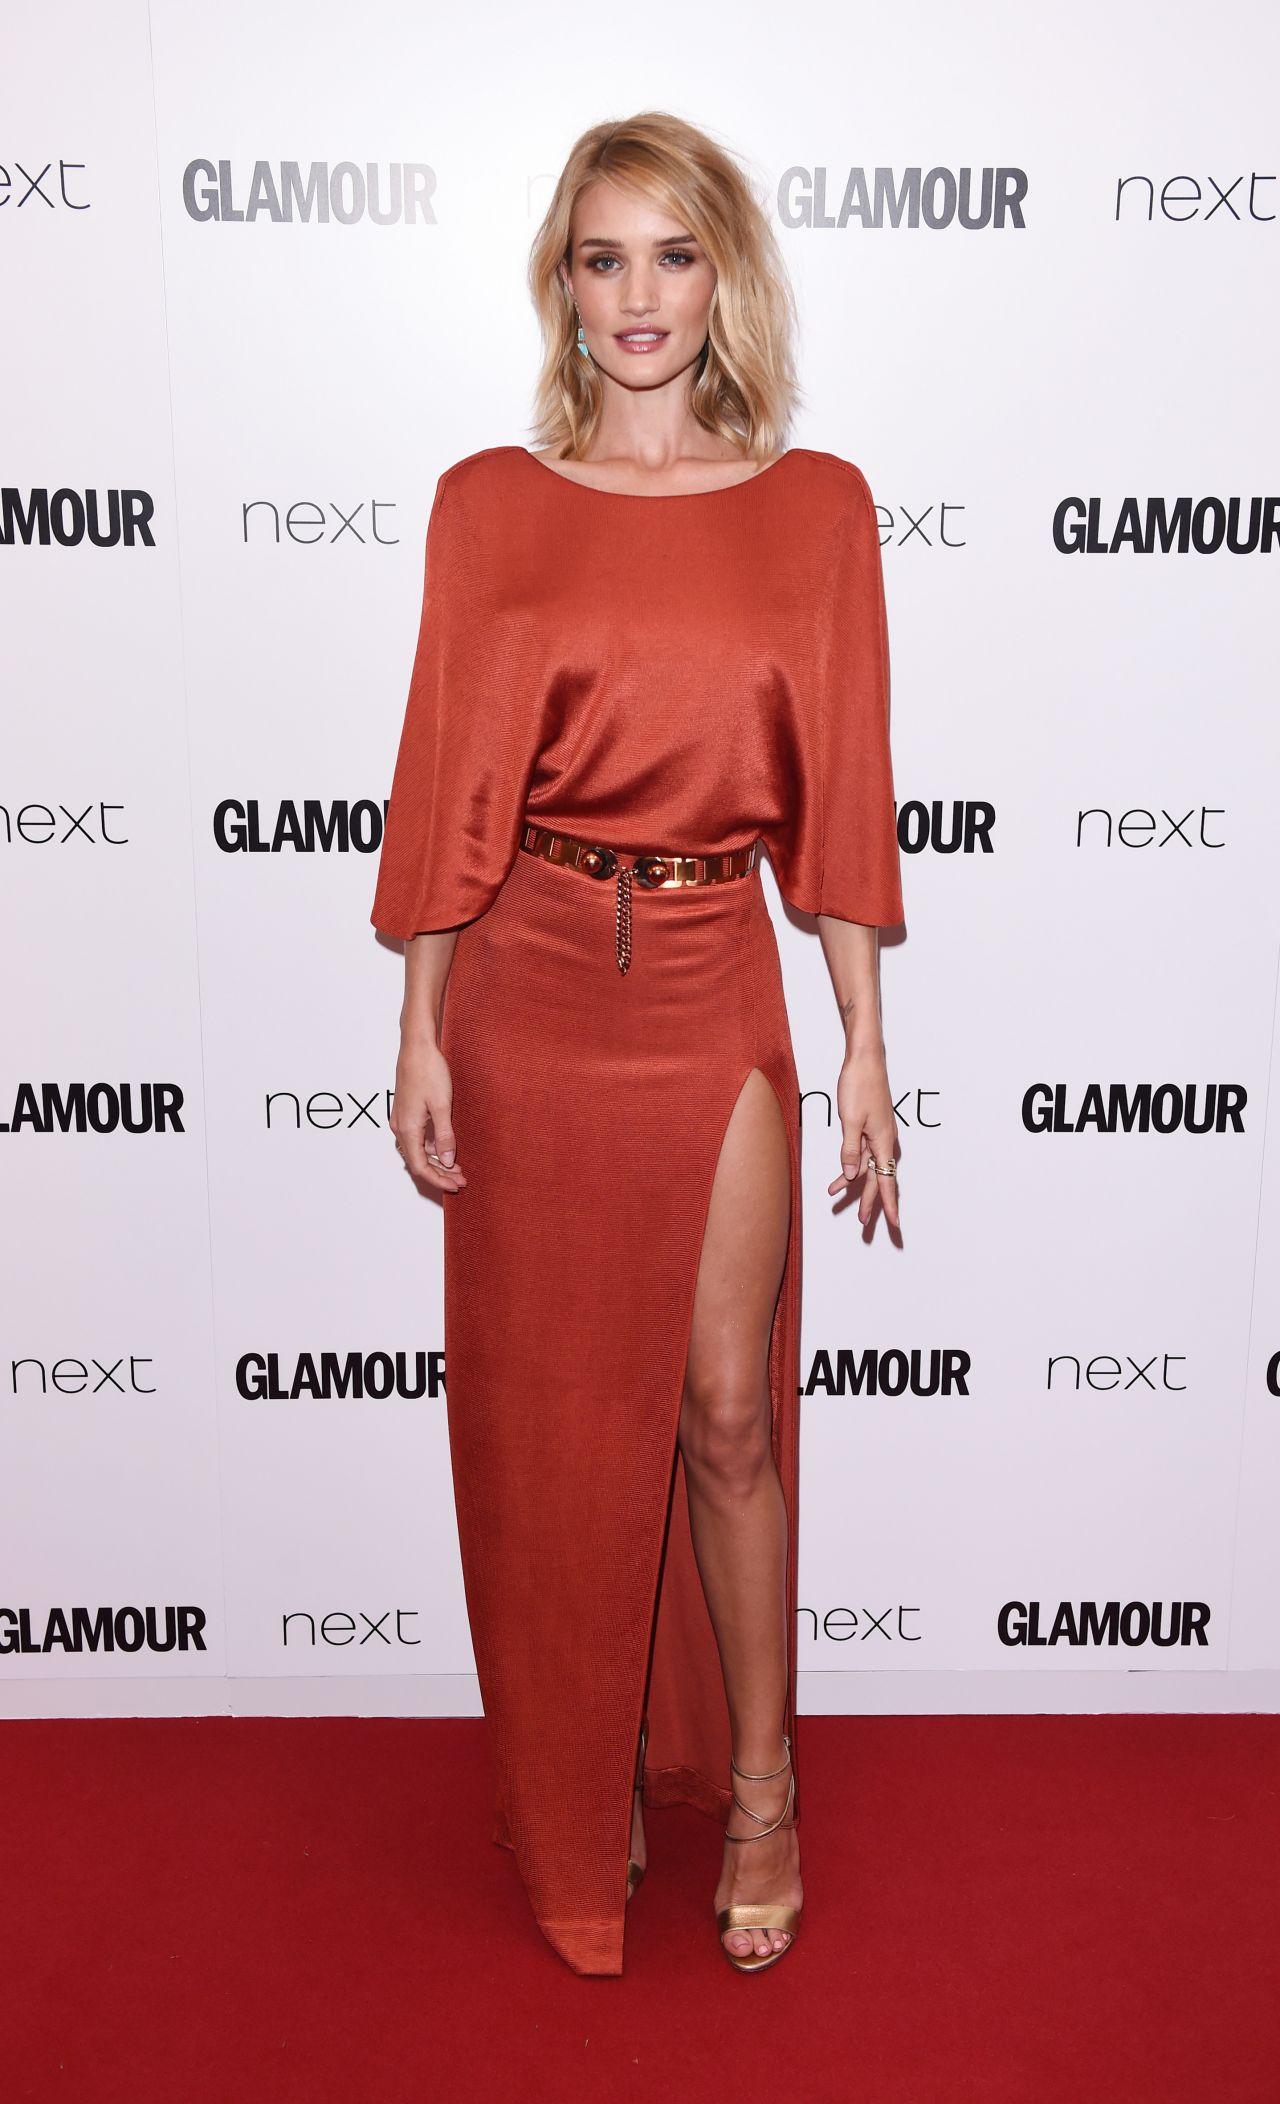 rosie-huntington-whiteley-2015-glamour-women-of-the-year-awards-in-london_23